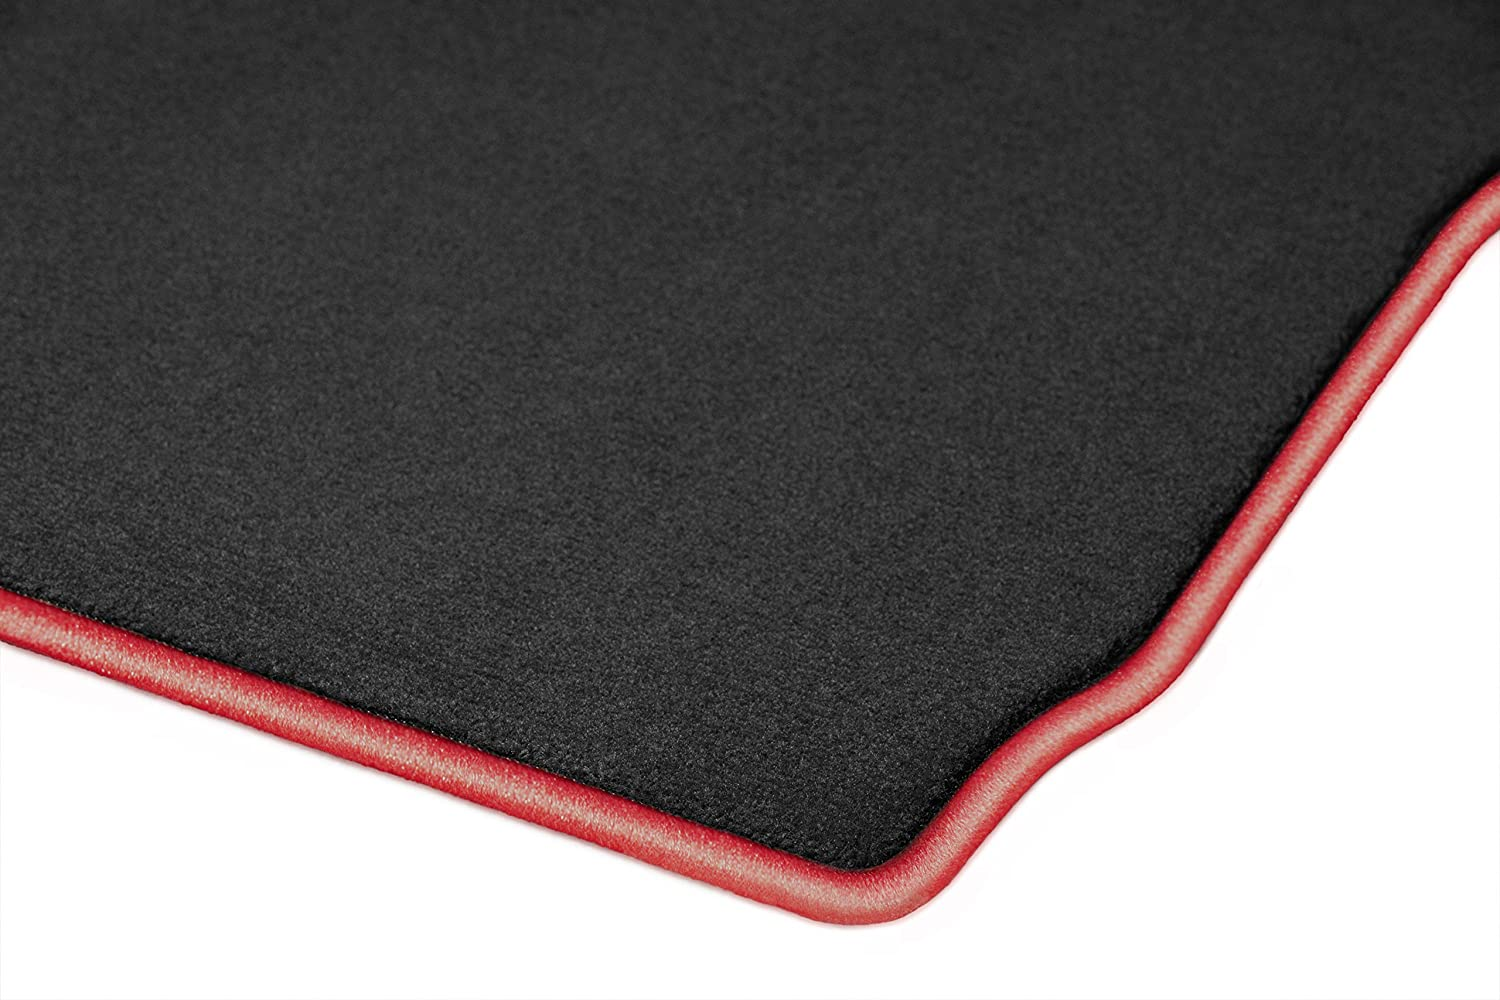 Passenger /& Rear 1998 2000 Dodge Grand Caravan Black with Red Edging Driver GGBAILEY D4563A-S2B-BLK/_BR Custom Fit Automotive Carpet Floor Mats for 1996 1999 1997